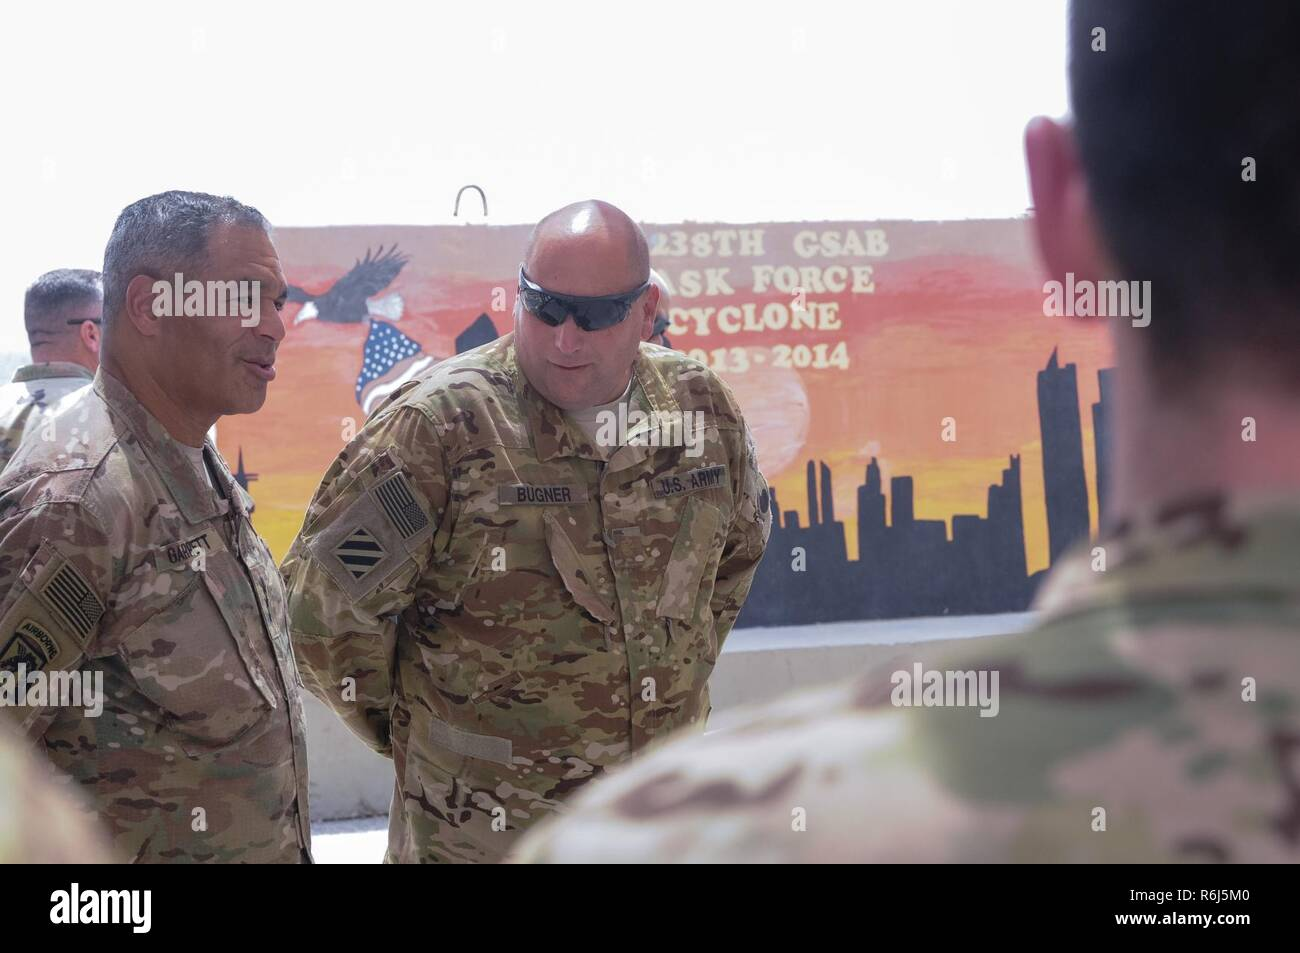 The Commanding General of U.S. Army Central Lt. Gen. Michael X. Garrett, discusses the achievements and capabilities of the 2nd General Support Aviation Battalion, 149th Aviation Regiment with Maj. Robert Bugner on May 19 at Camp Buehring, Kuwait. - Stock Image